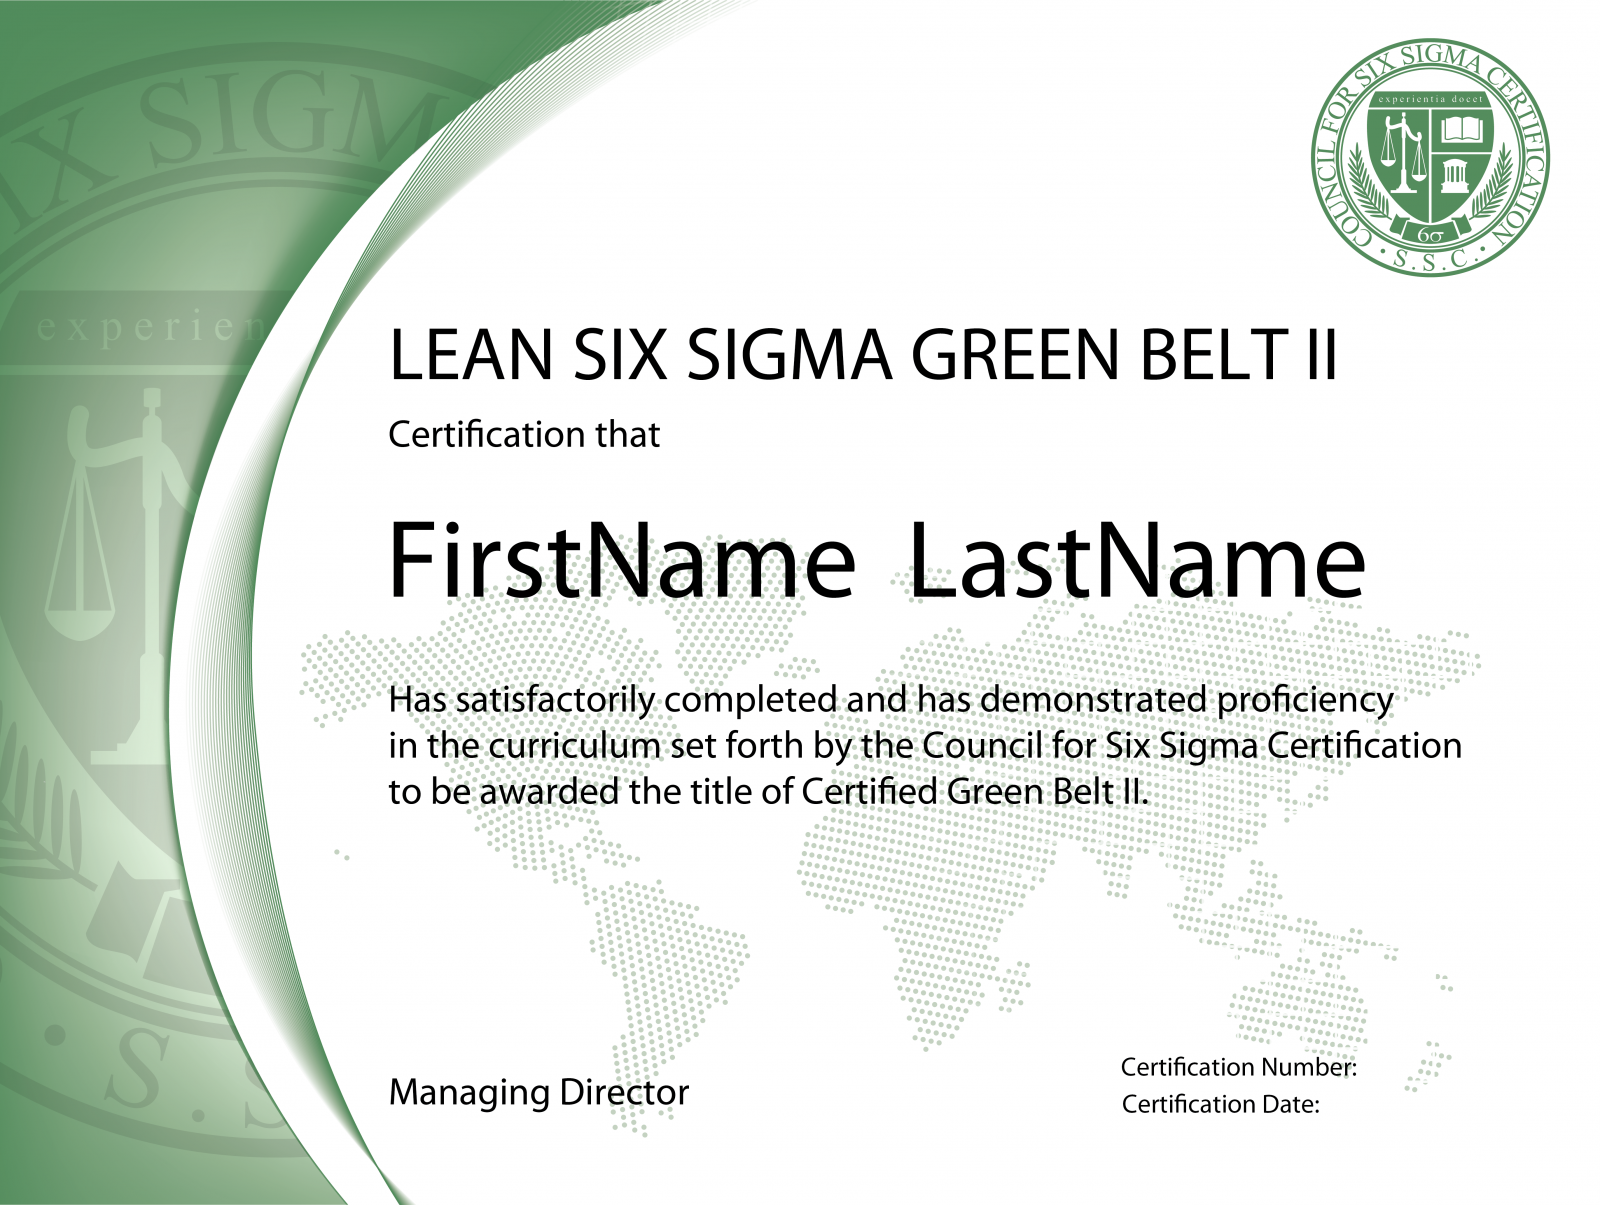 Lean Six Sigma Green Belt Certification Level Ii The Council For